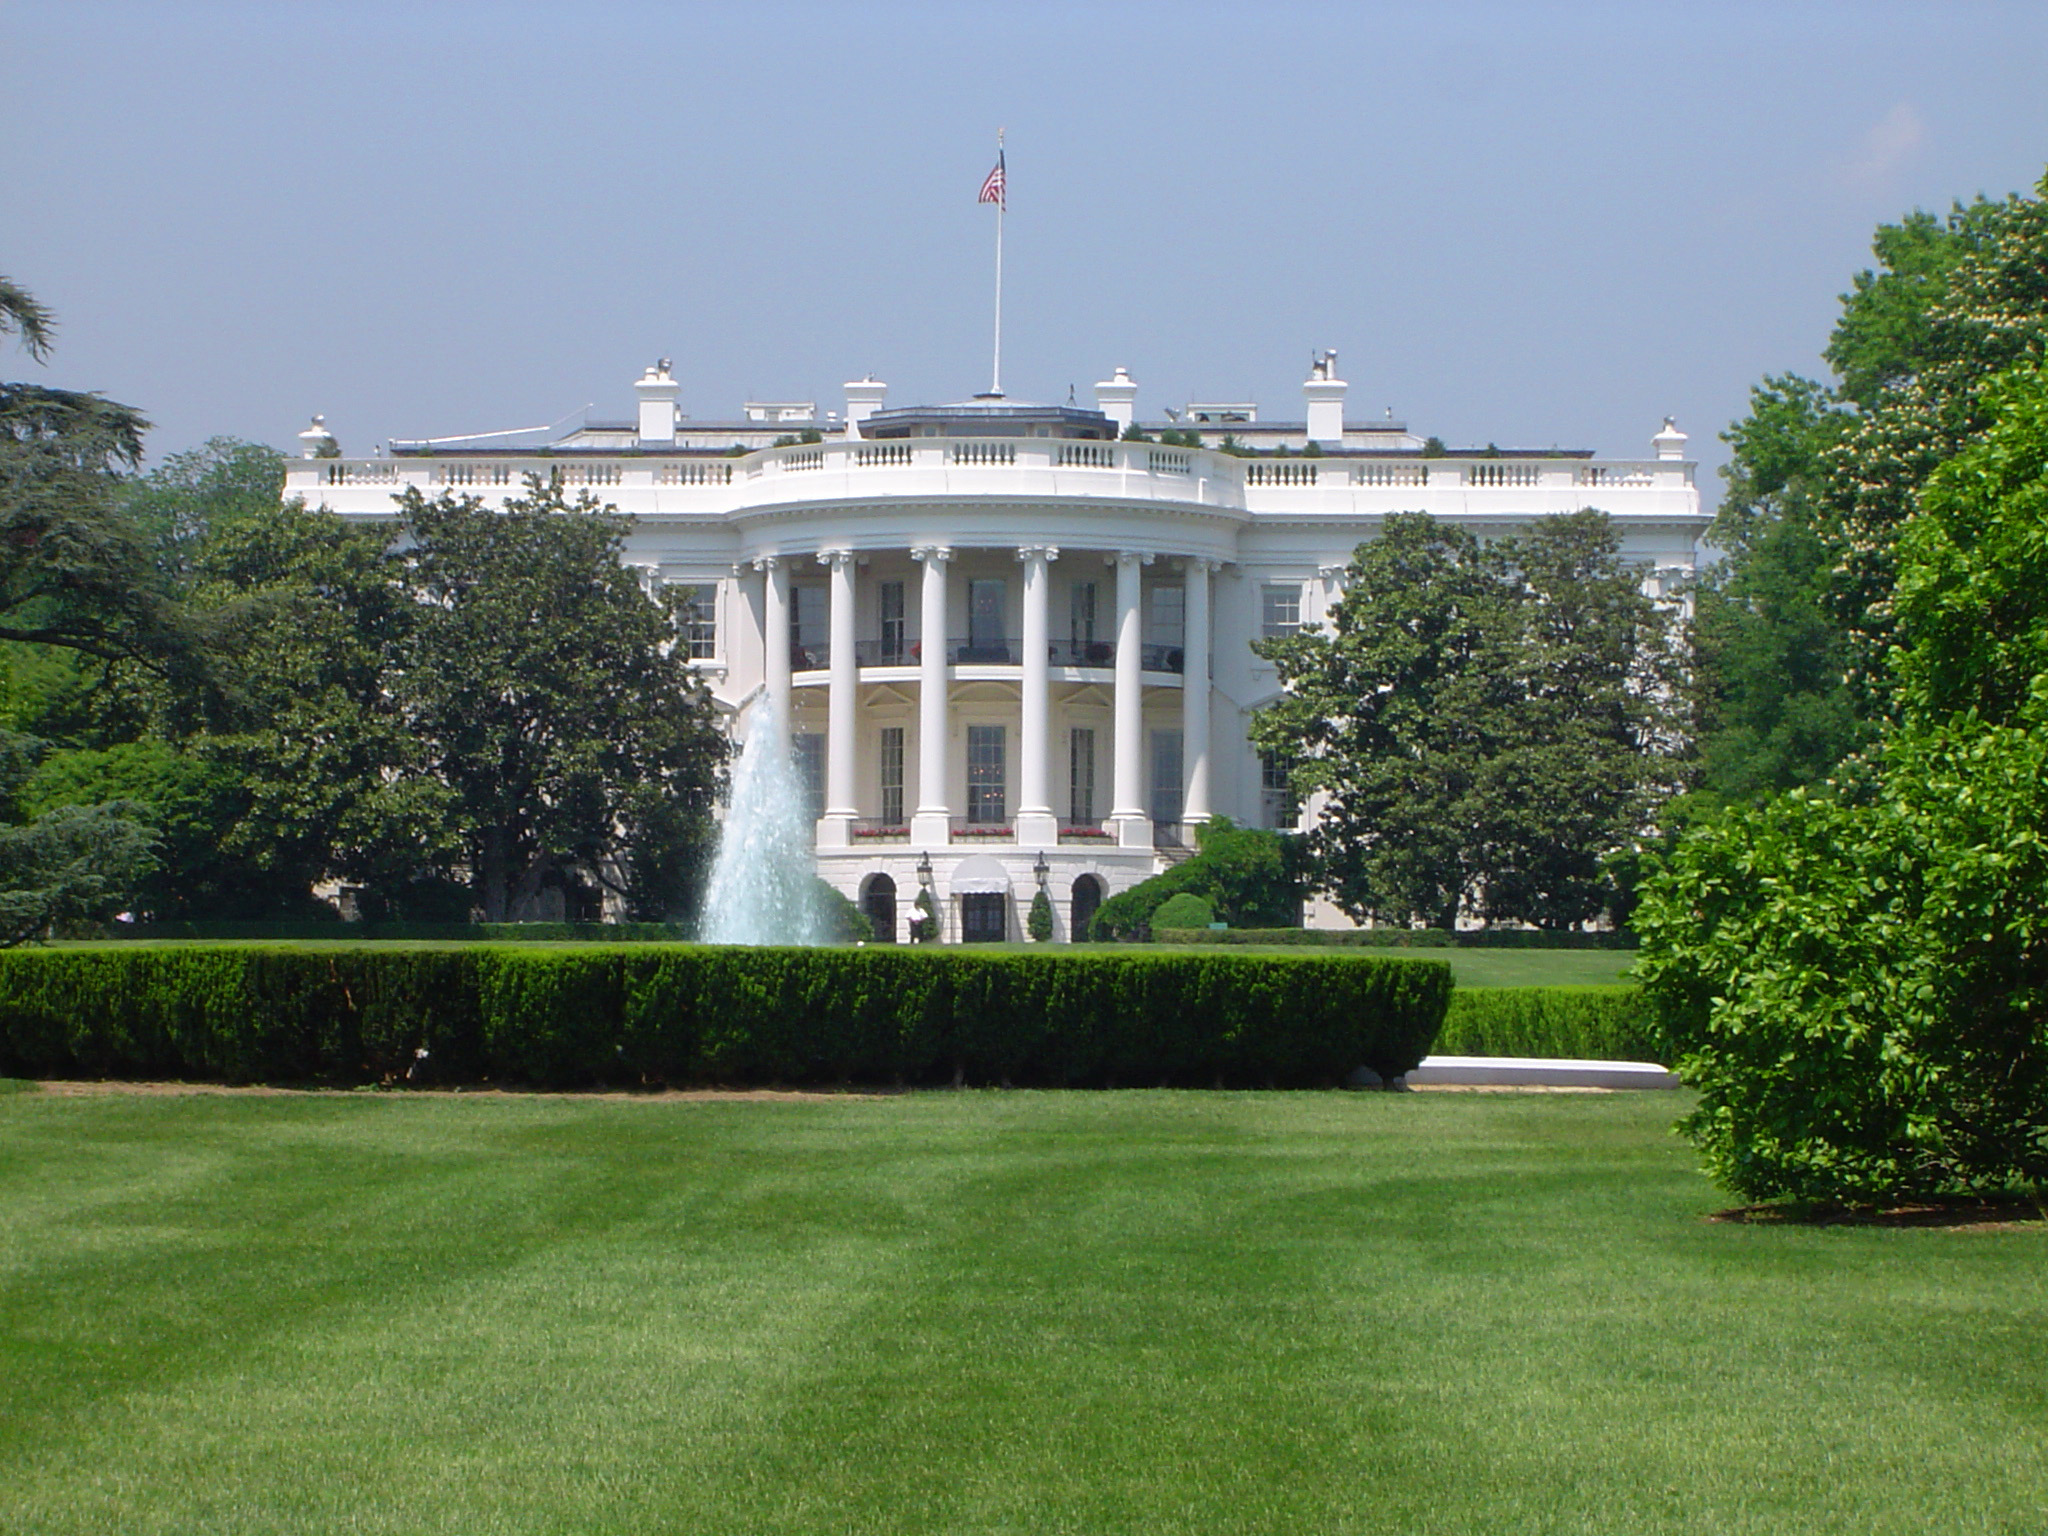 Scenic view of the exterior of the White House, Washington DC viewed across manicured green lawns on a sunny summer day